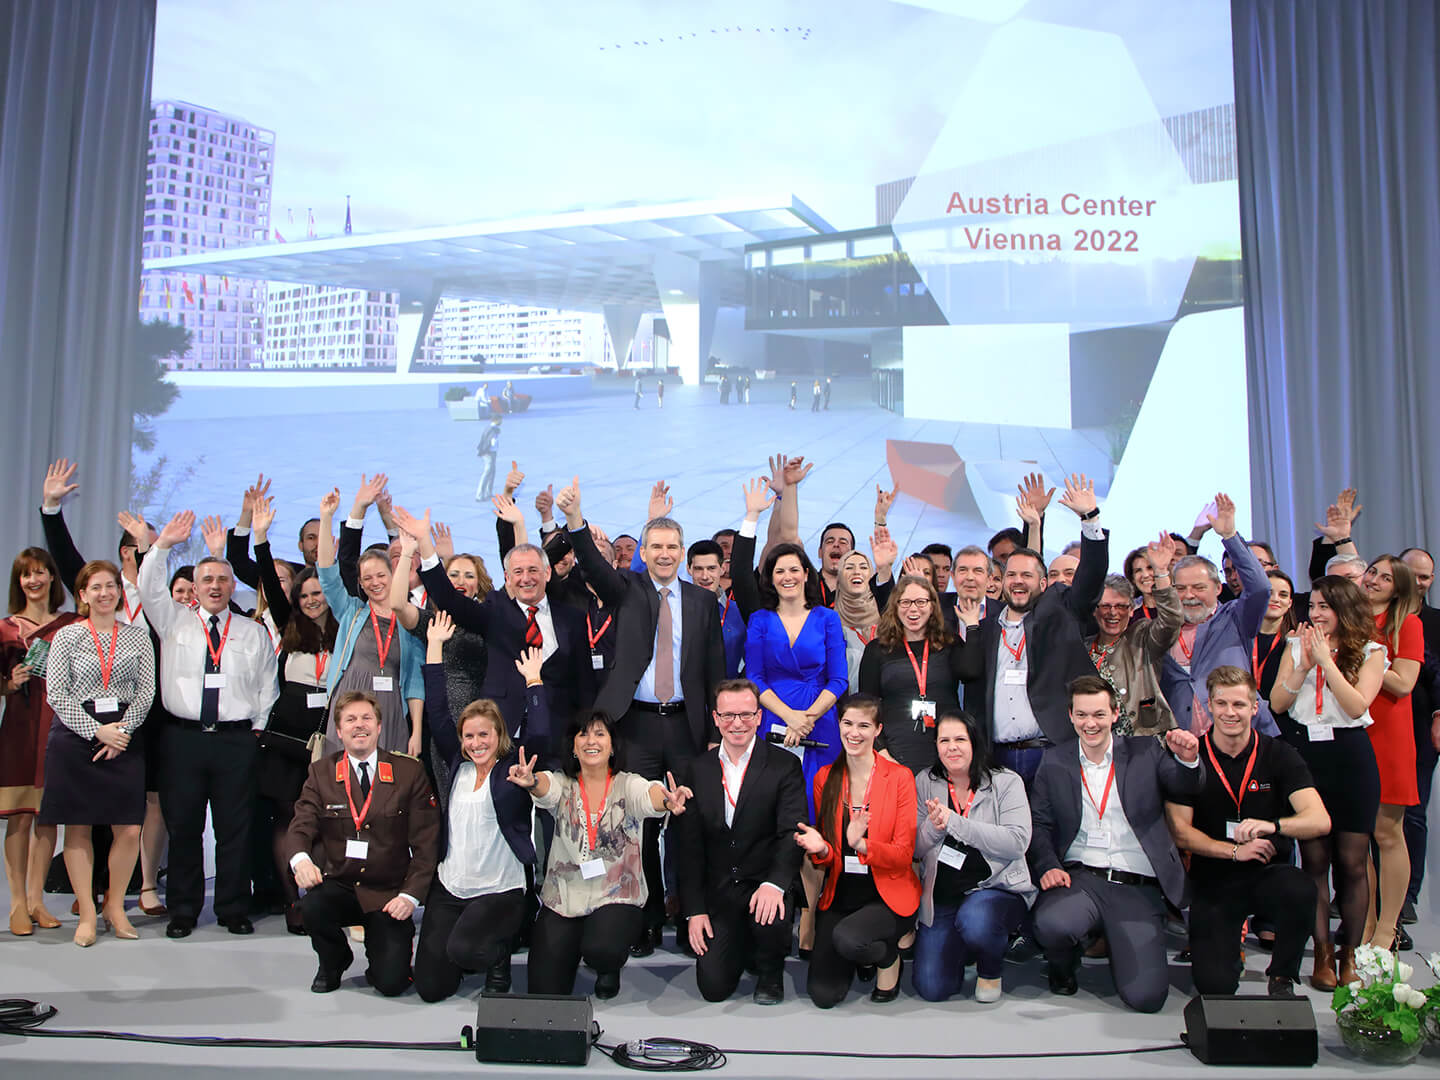 Foto: Teamfoto des Austria Center Vienna